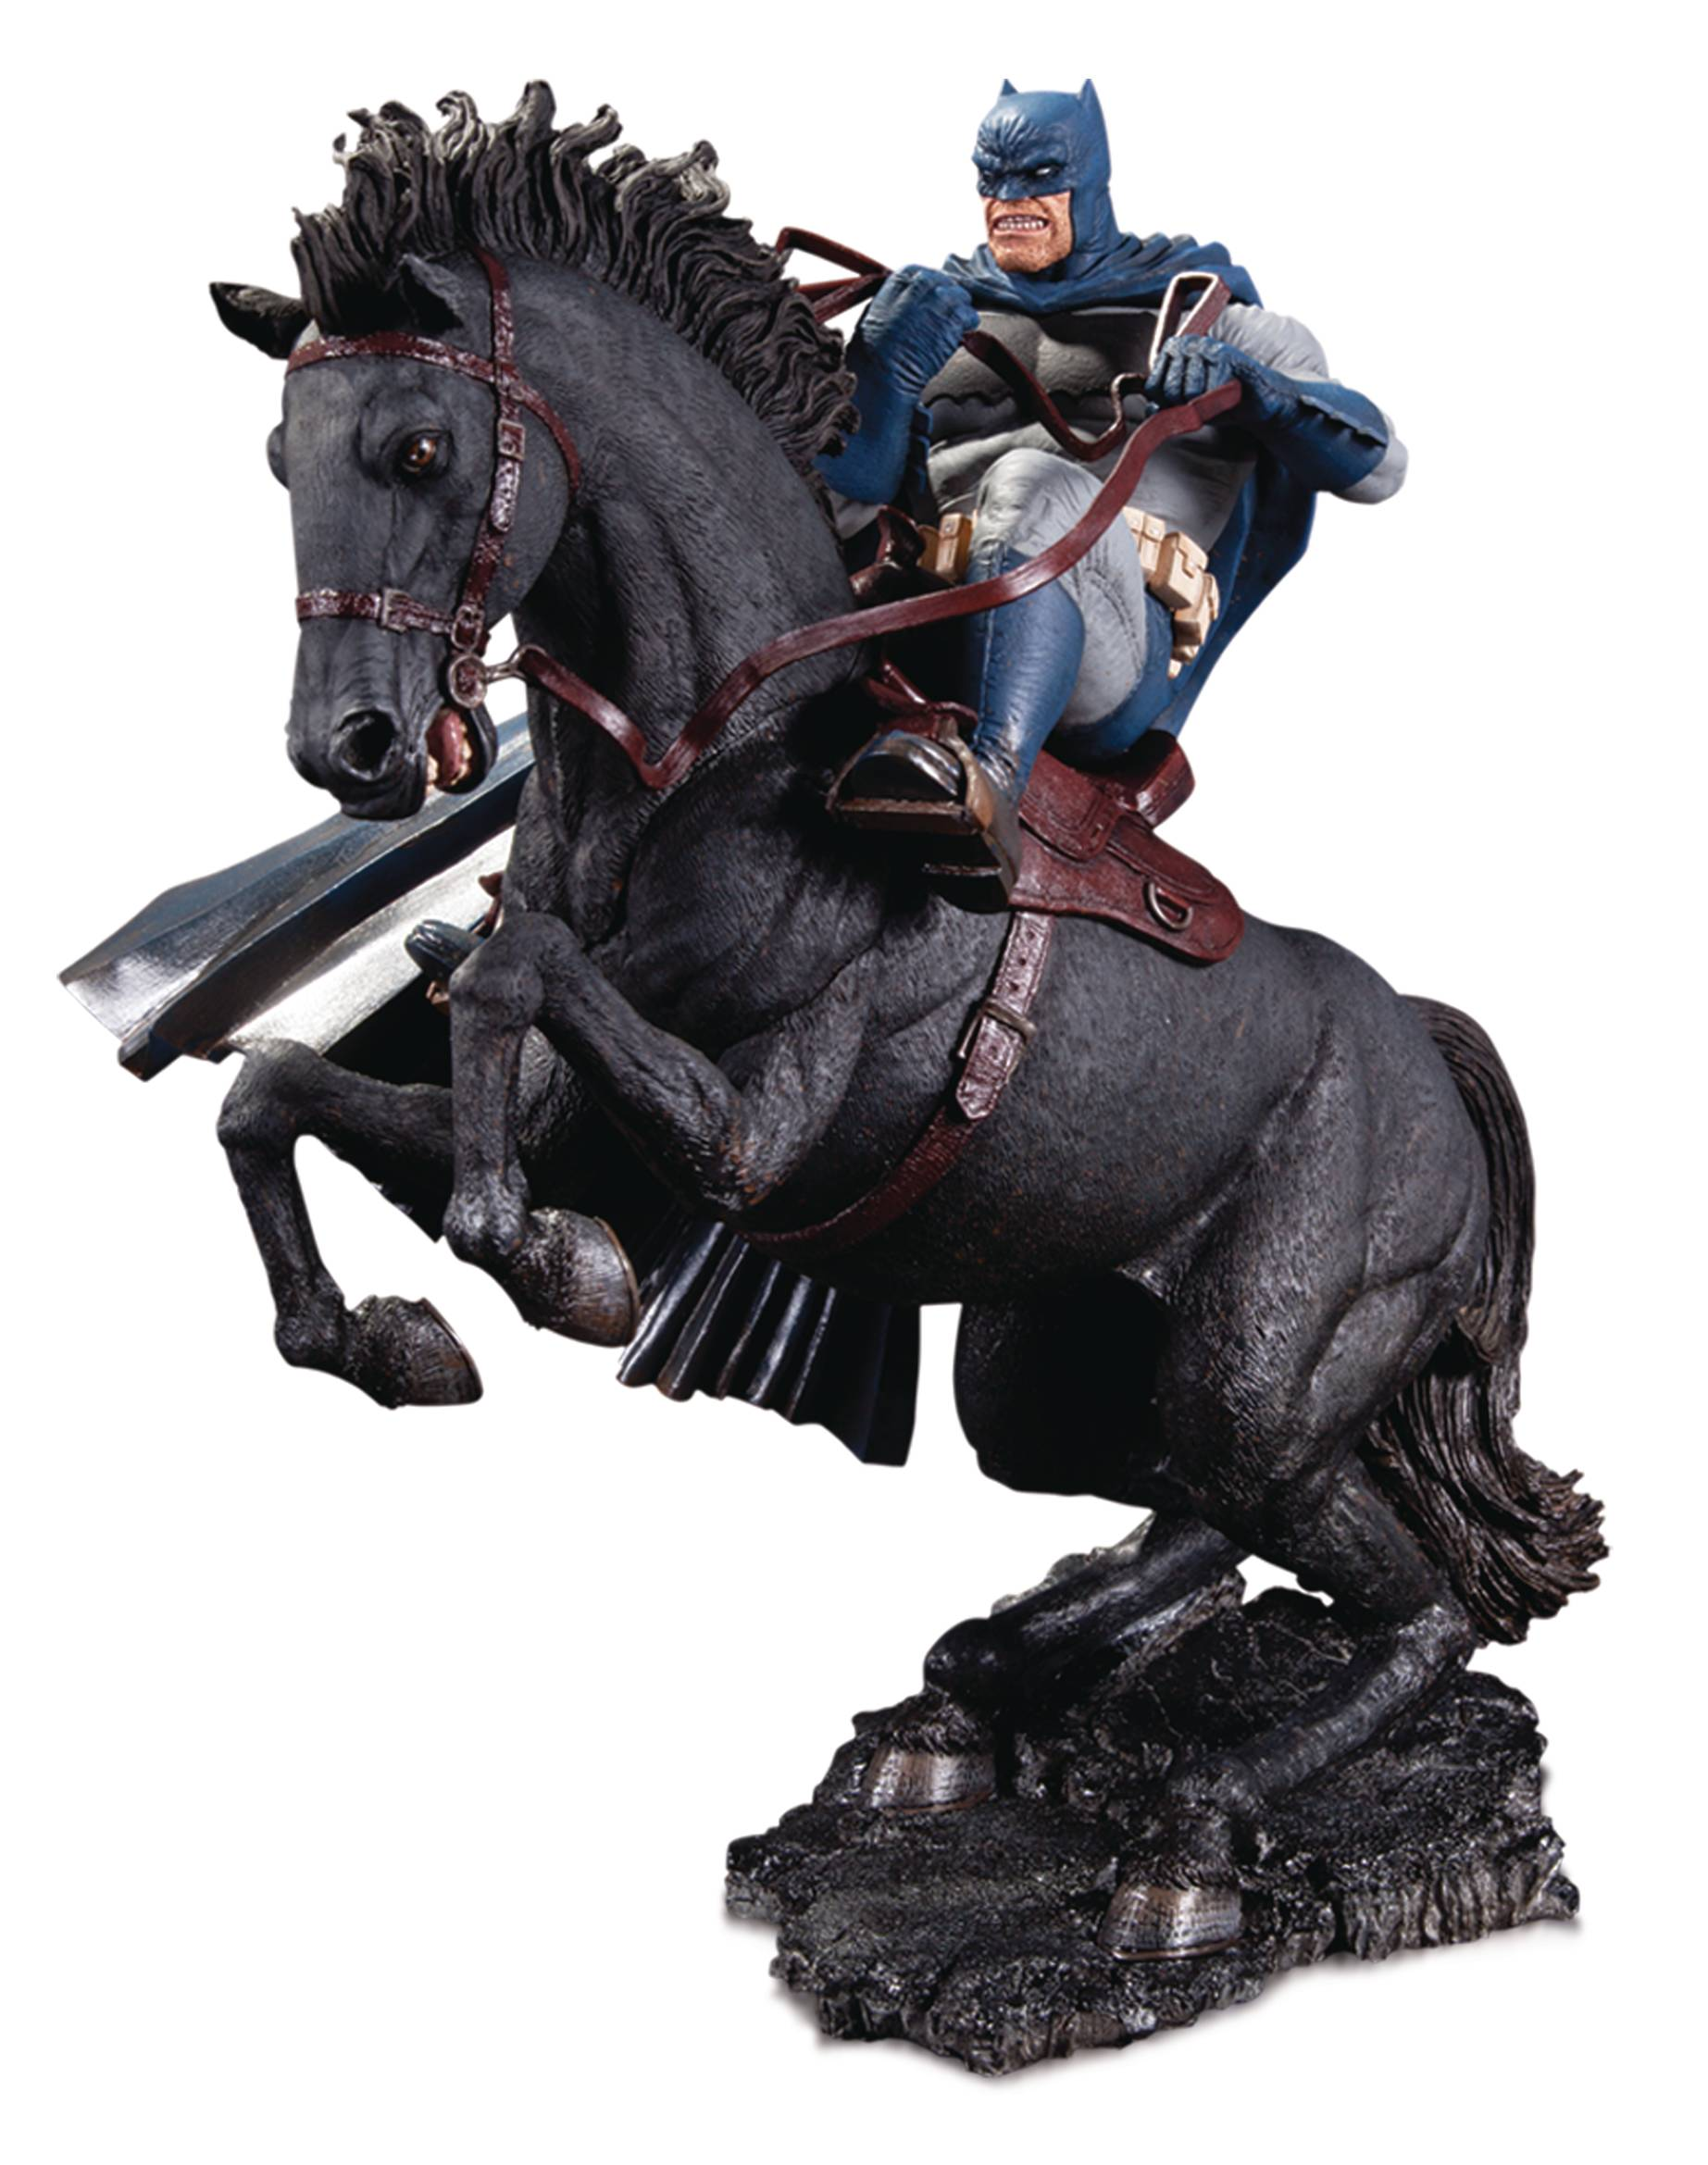 DKR CALL TO ARMS STATUE MINI BATTLE STATUE.jpg